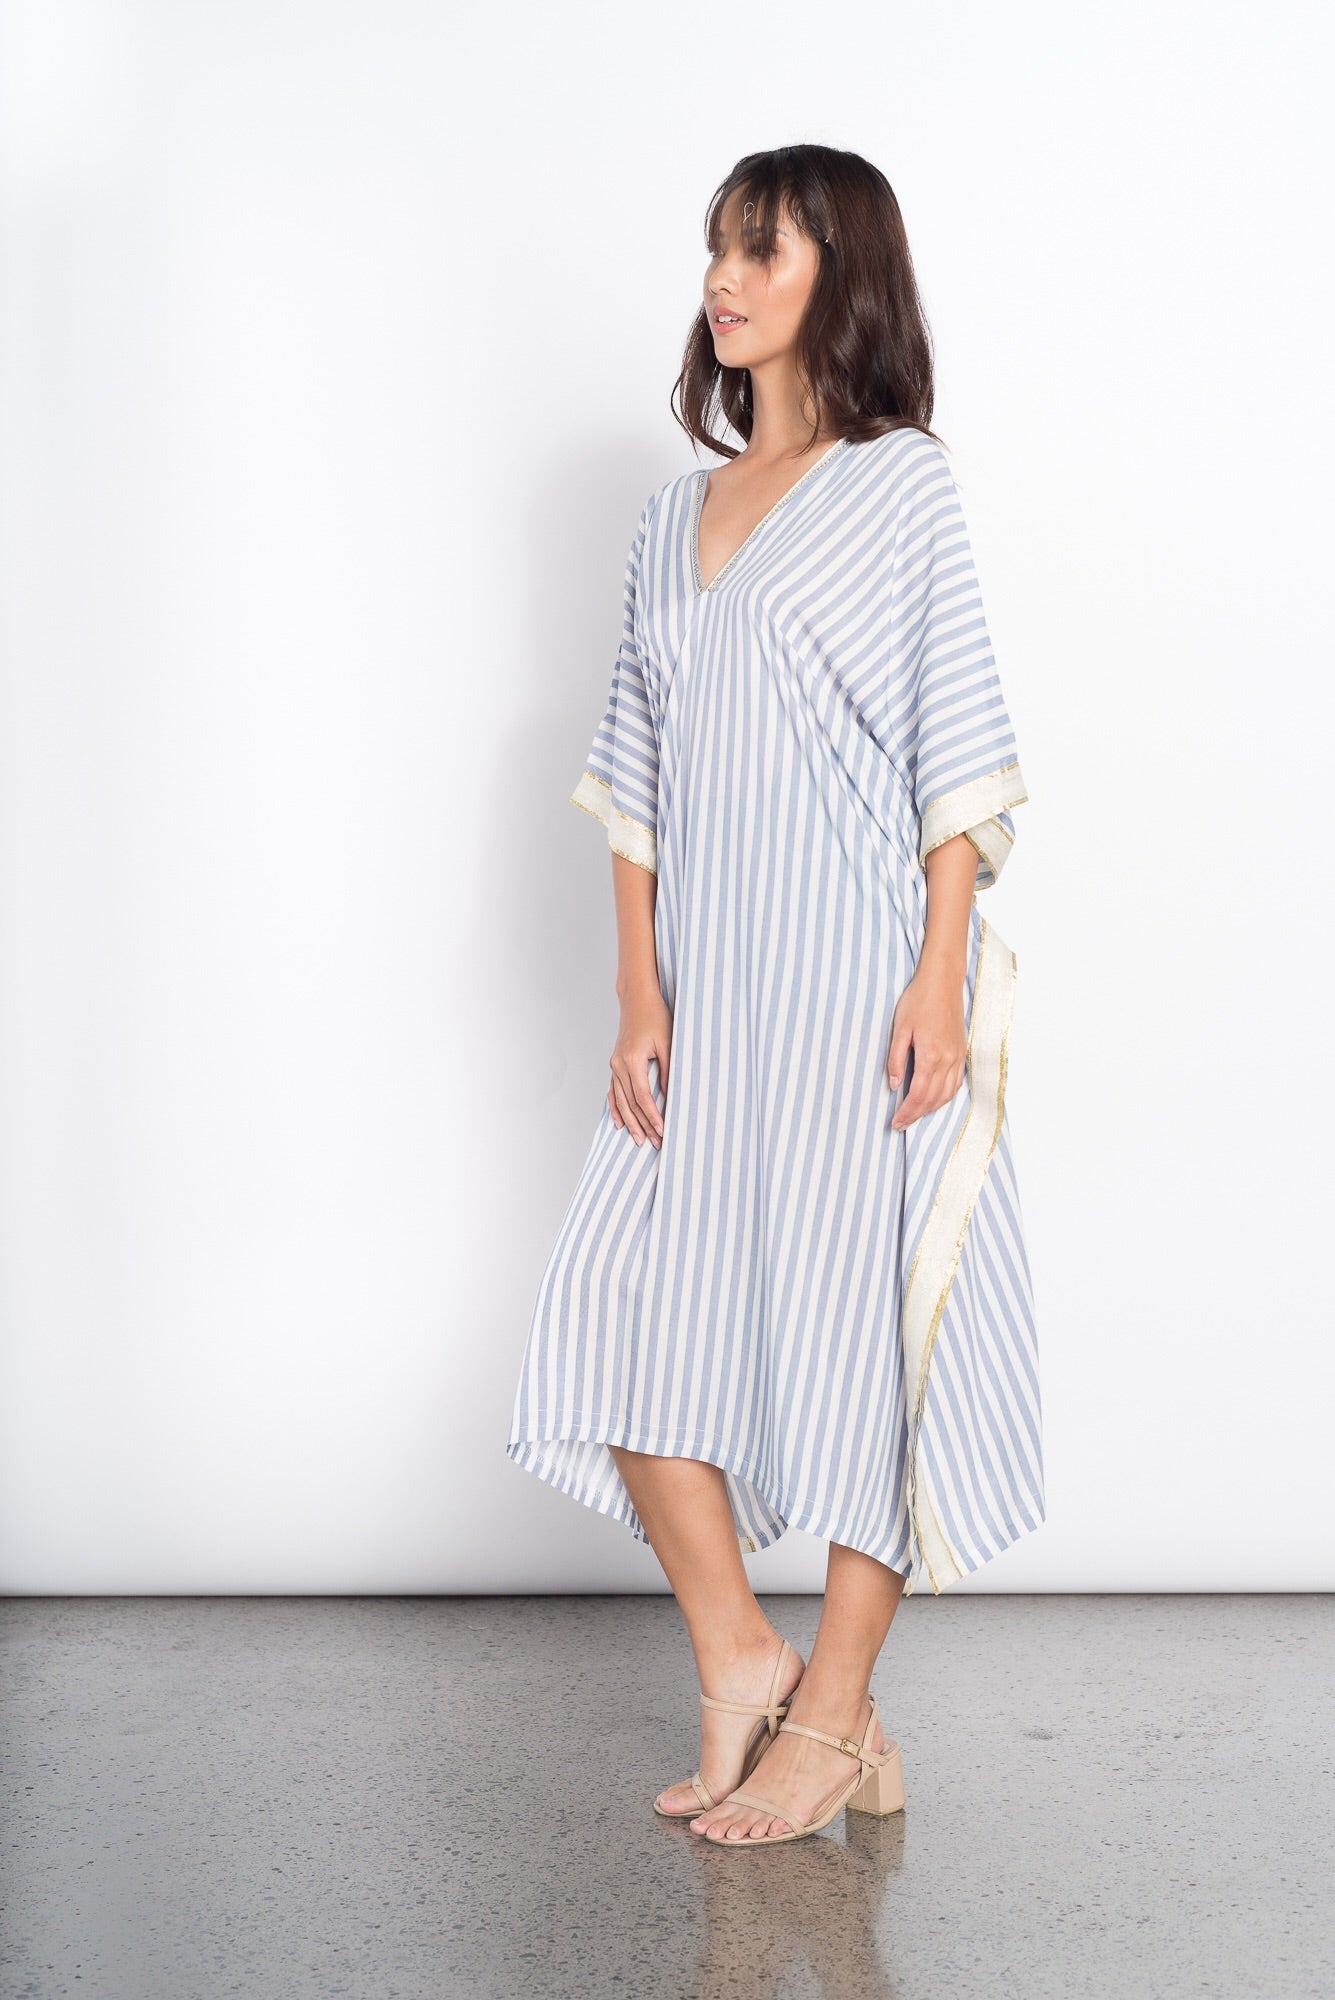 Glenna Cover Up in Blue Stripes